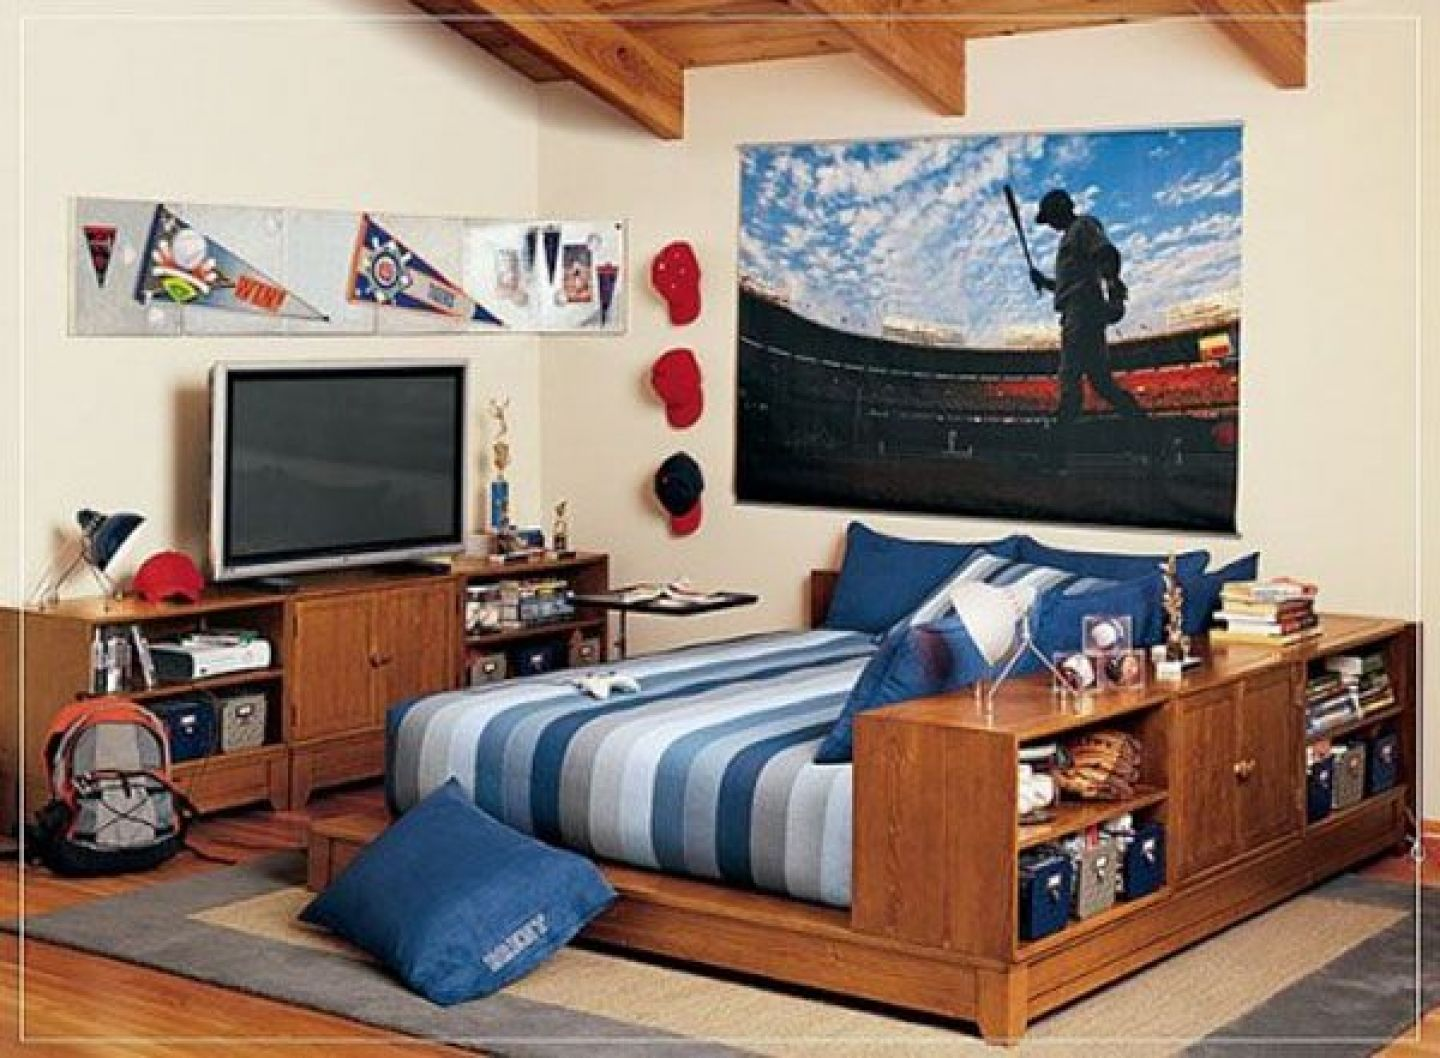 Cool bedroom designs for boys - Teen Boy Bedroom Ideas 5